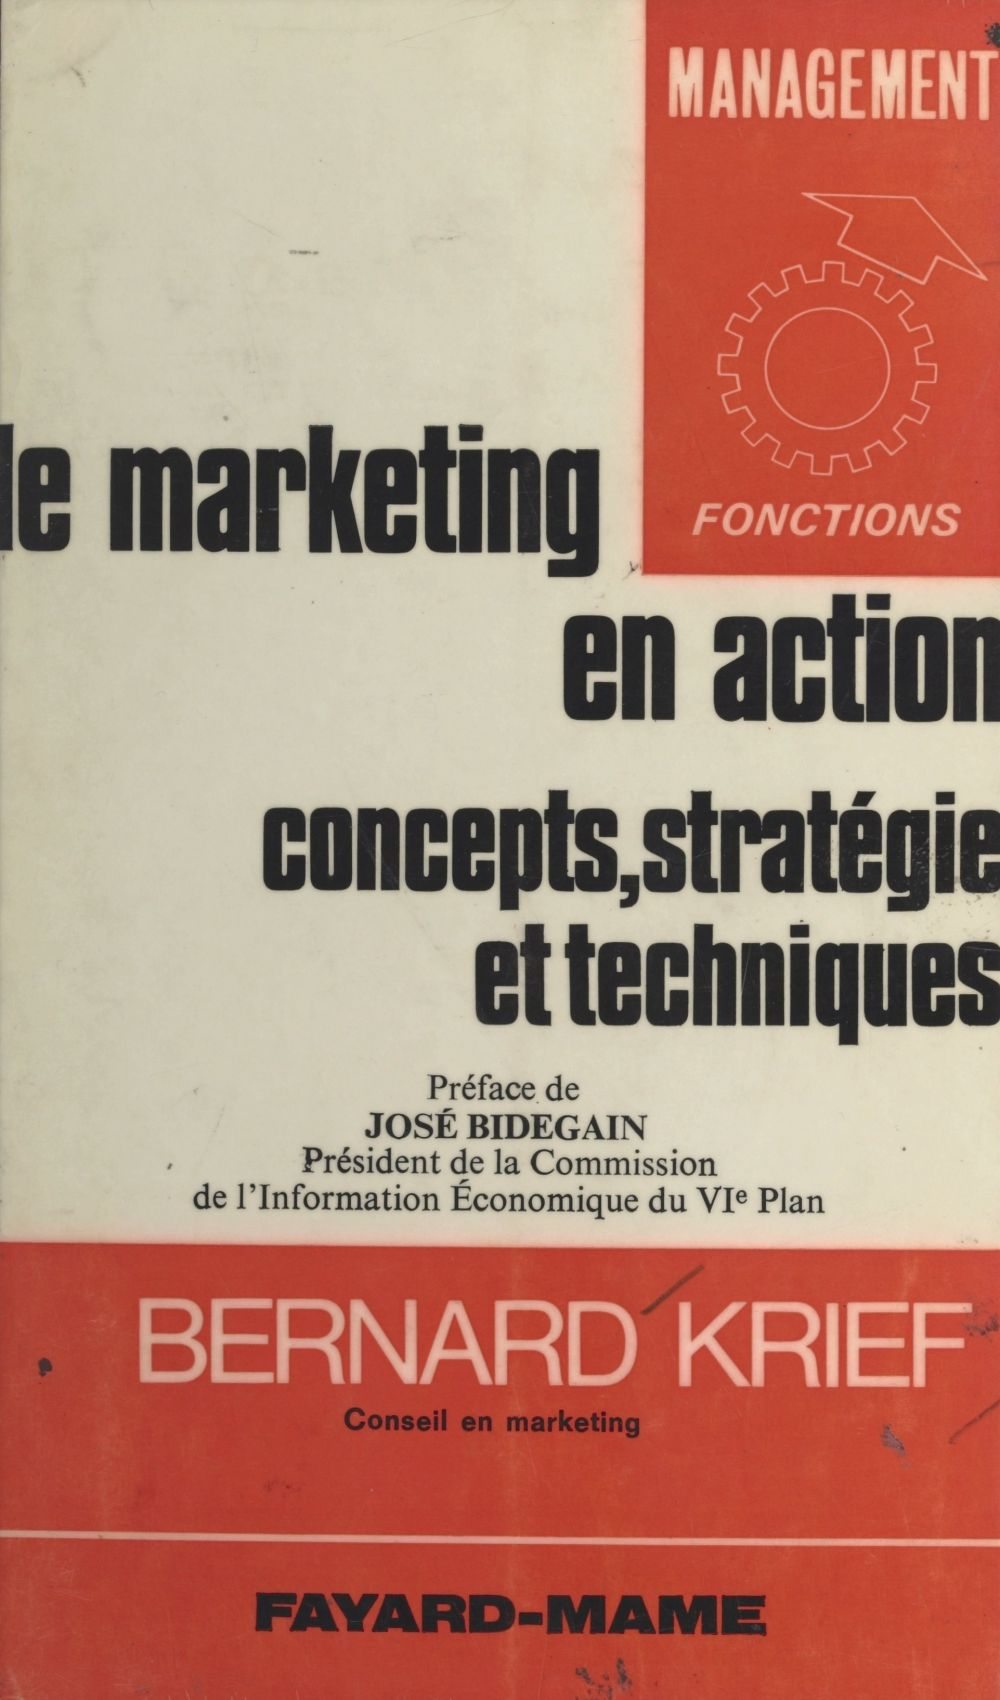 Le marketing en action : concepts, stratégie, techniques